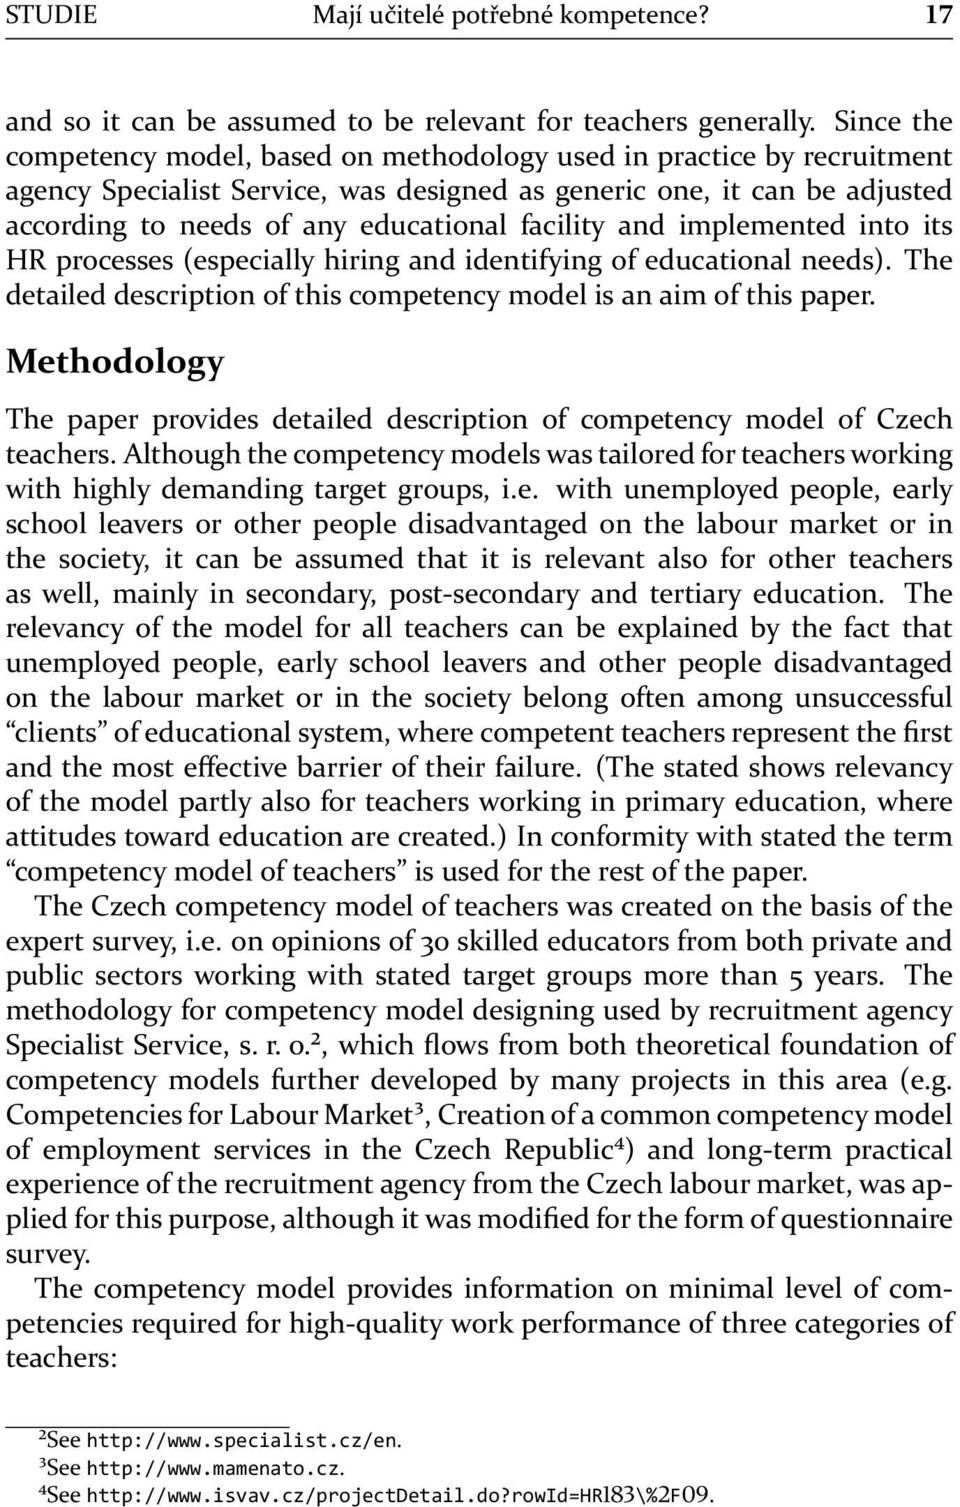 facility and implemented into its HR processes (especially hiring and identifying of educational needs). The detailed description of this competency model is an aim of this paper.